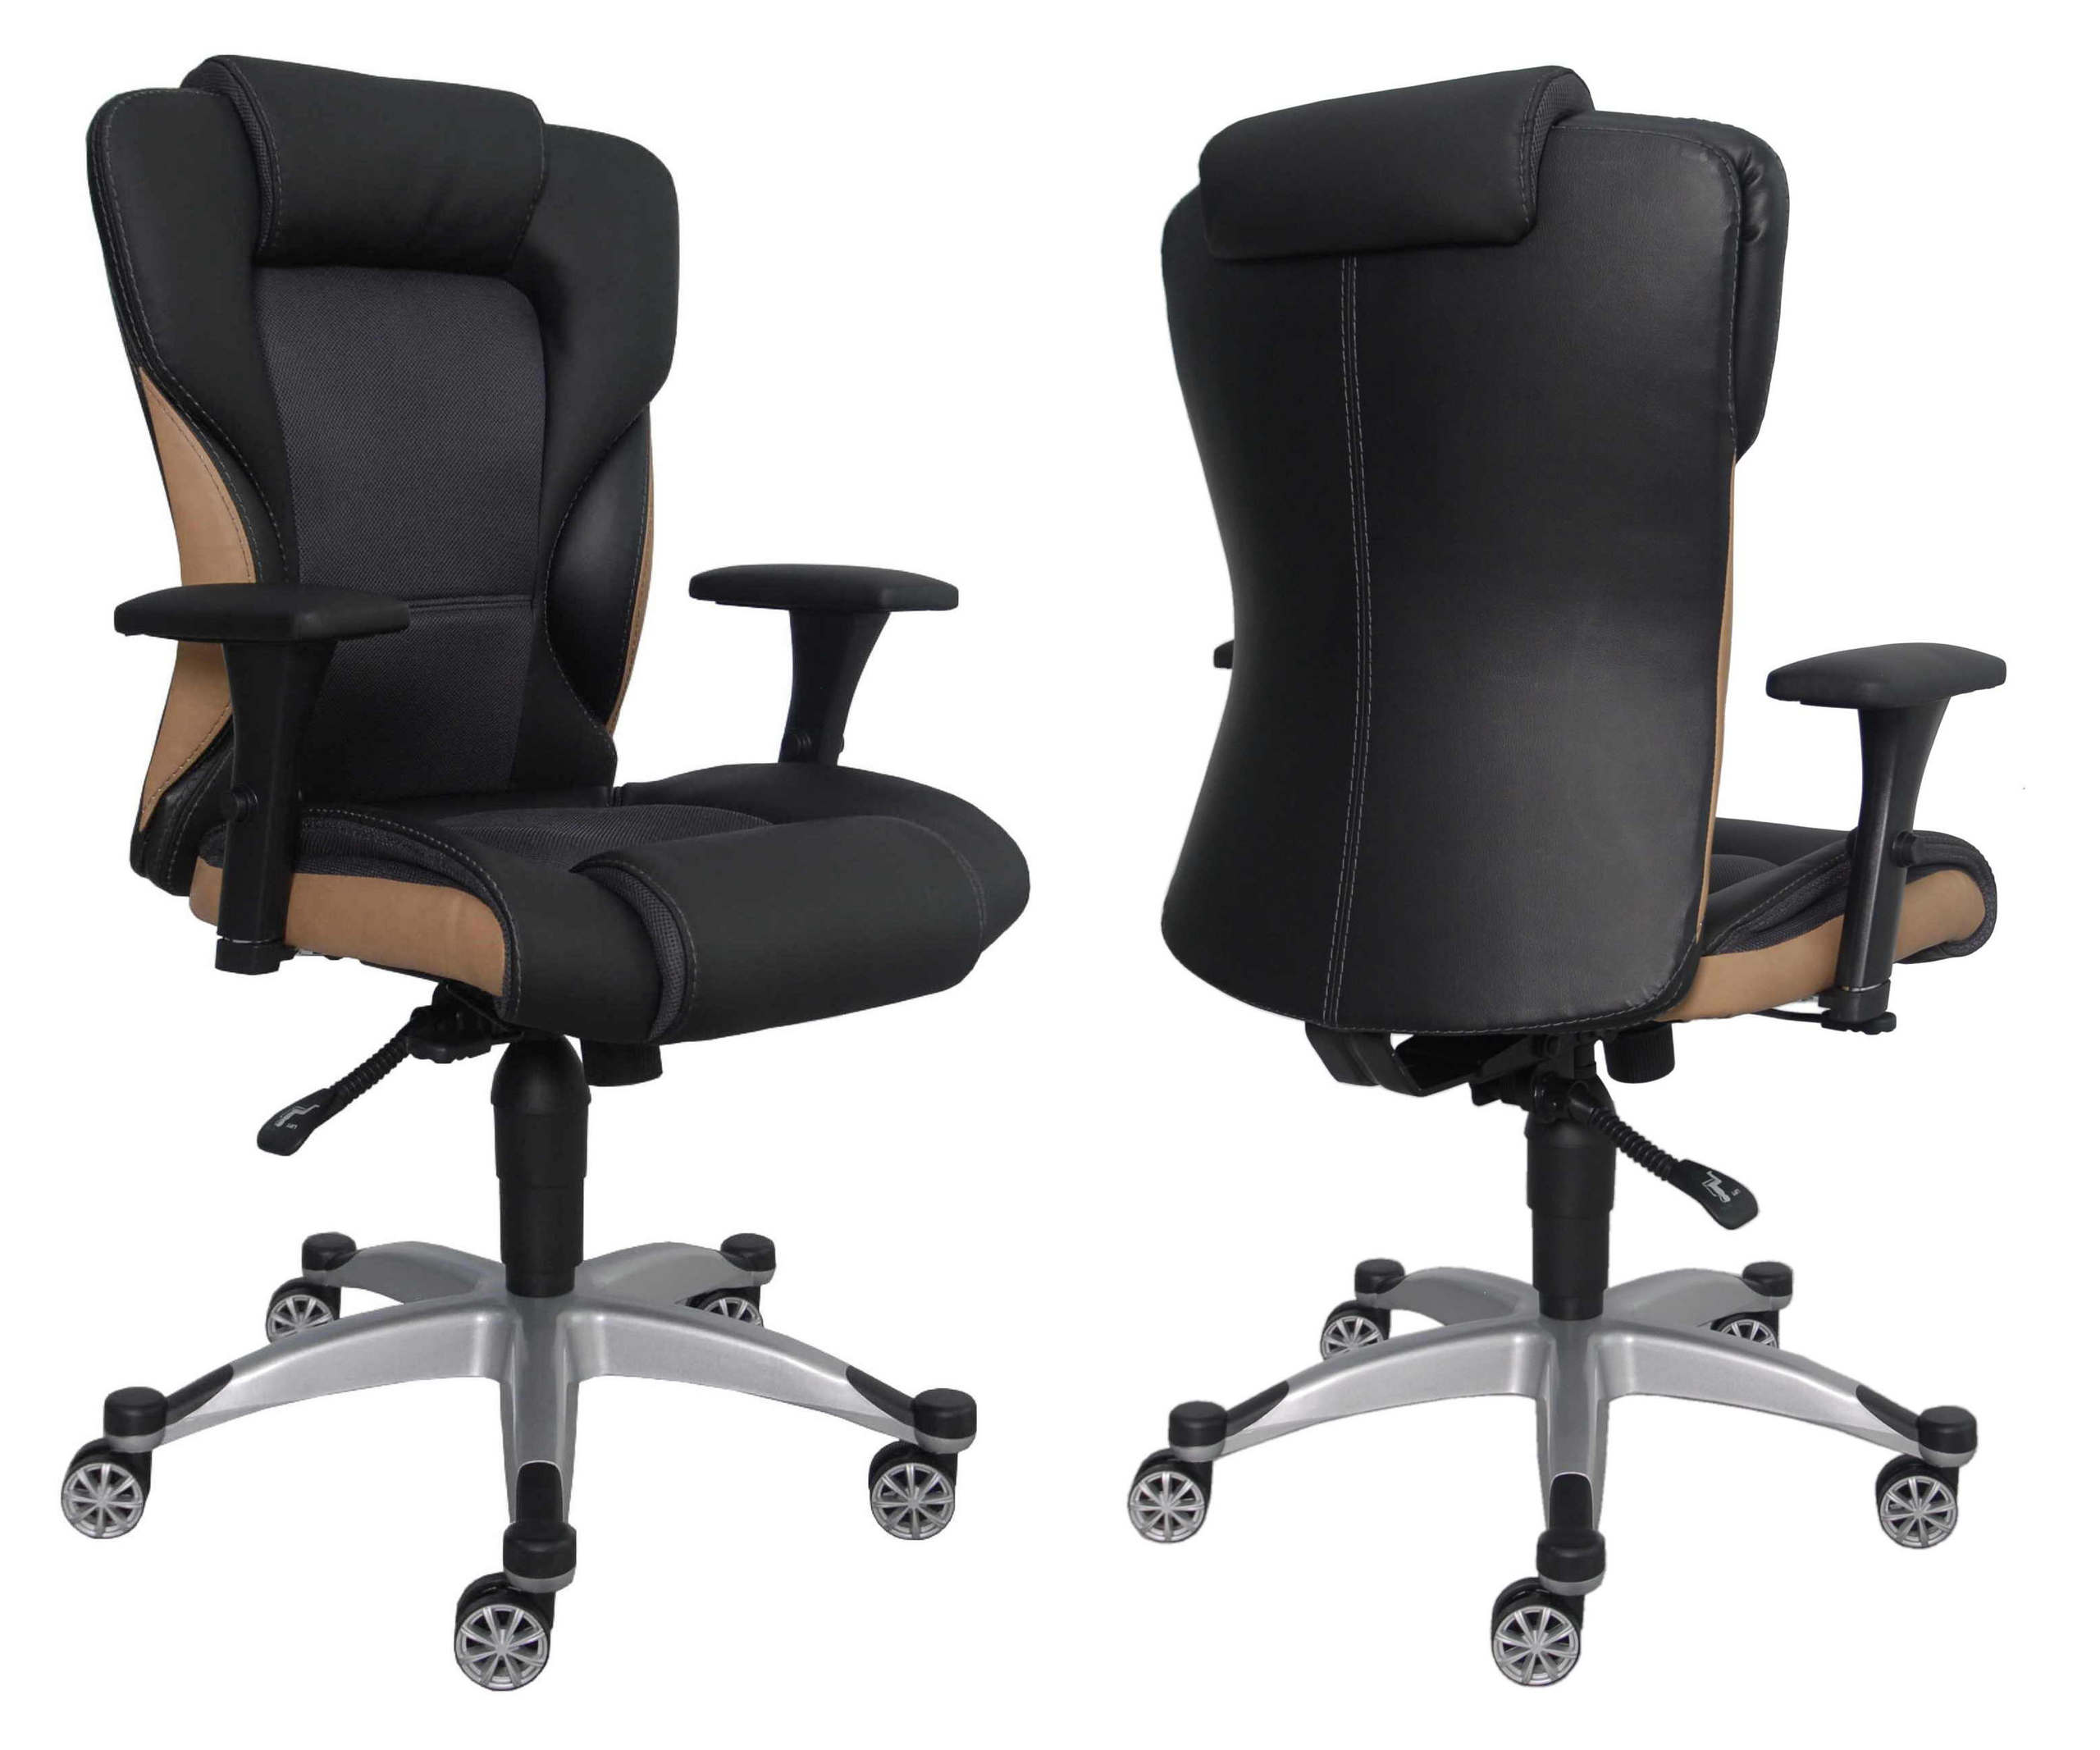 ergonomic office chair with lumbar support ergonomic office chair lumbar support decor ideas for ergonomic office chair lumbar support